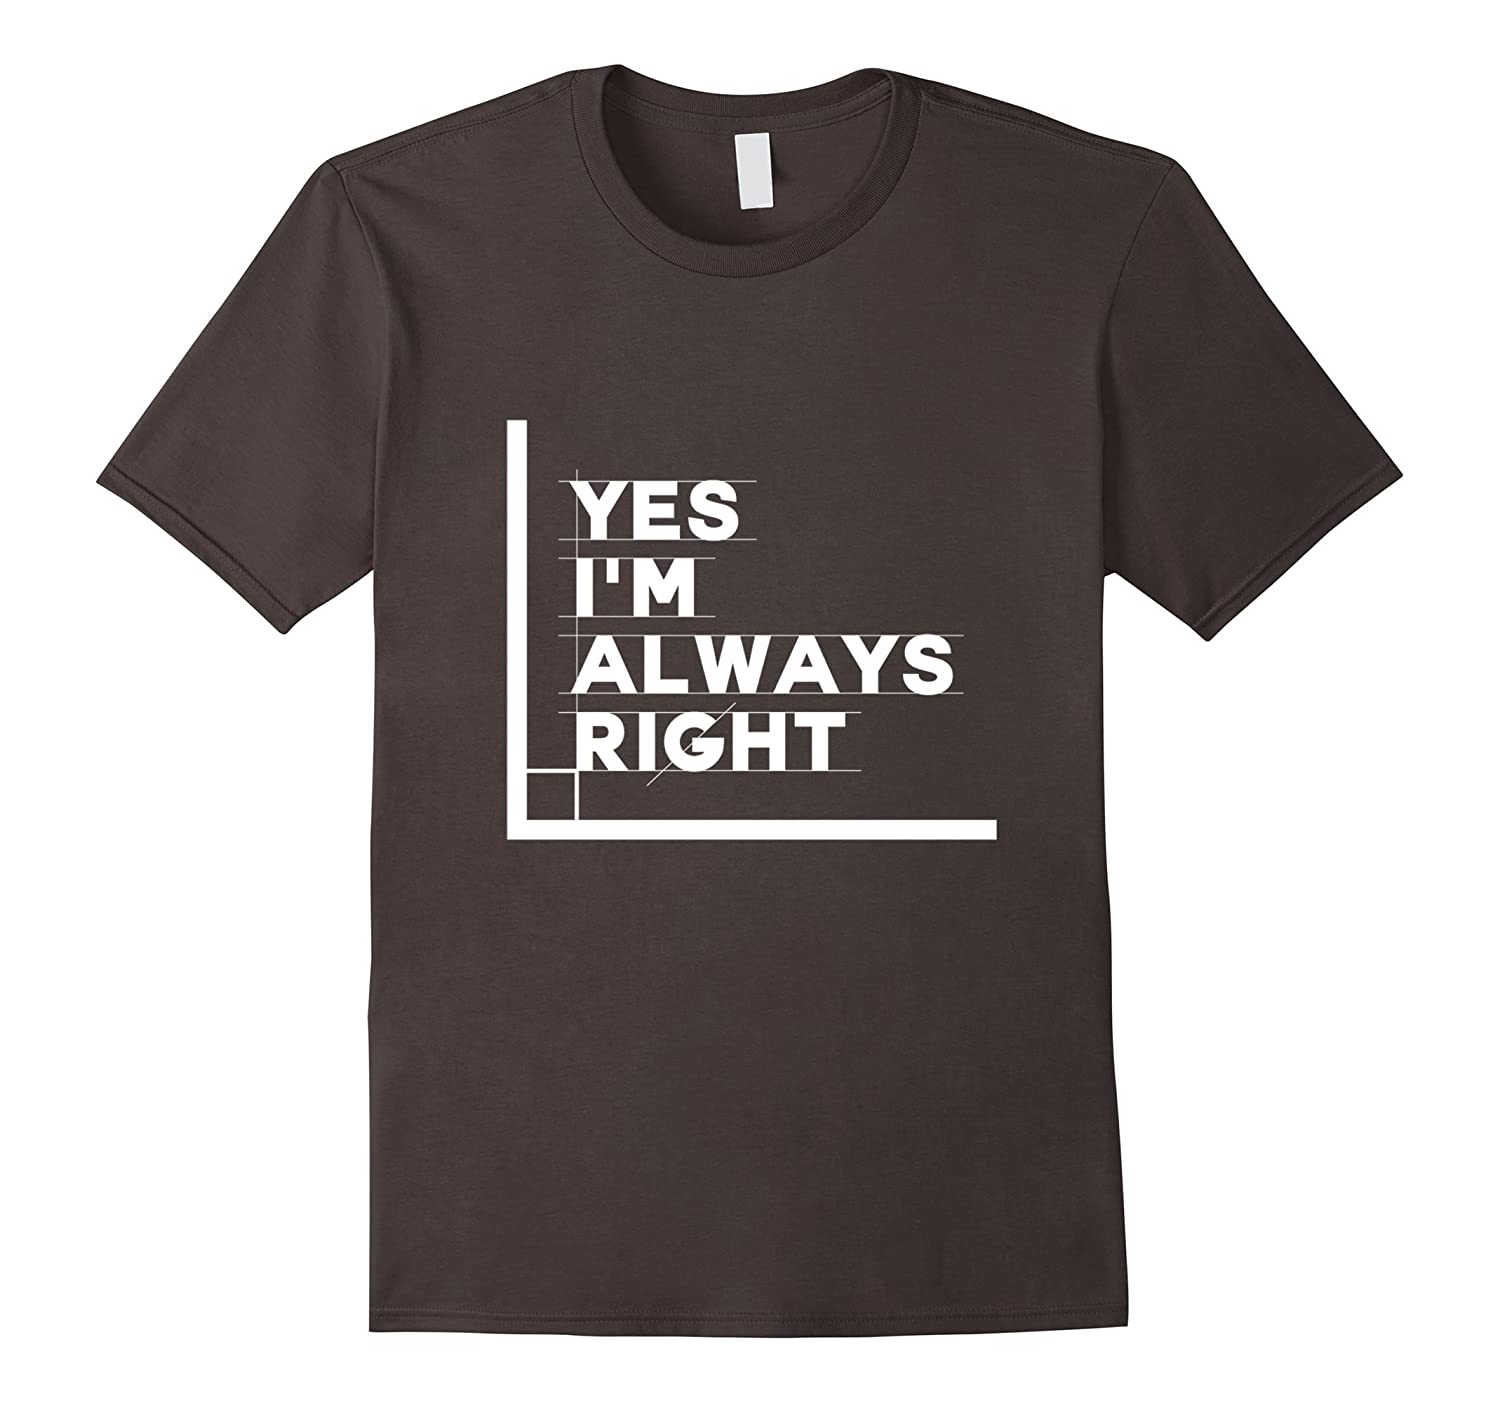 Right Angle Tee : Yes im always right angle math square funny pun tee shirt